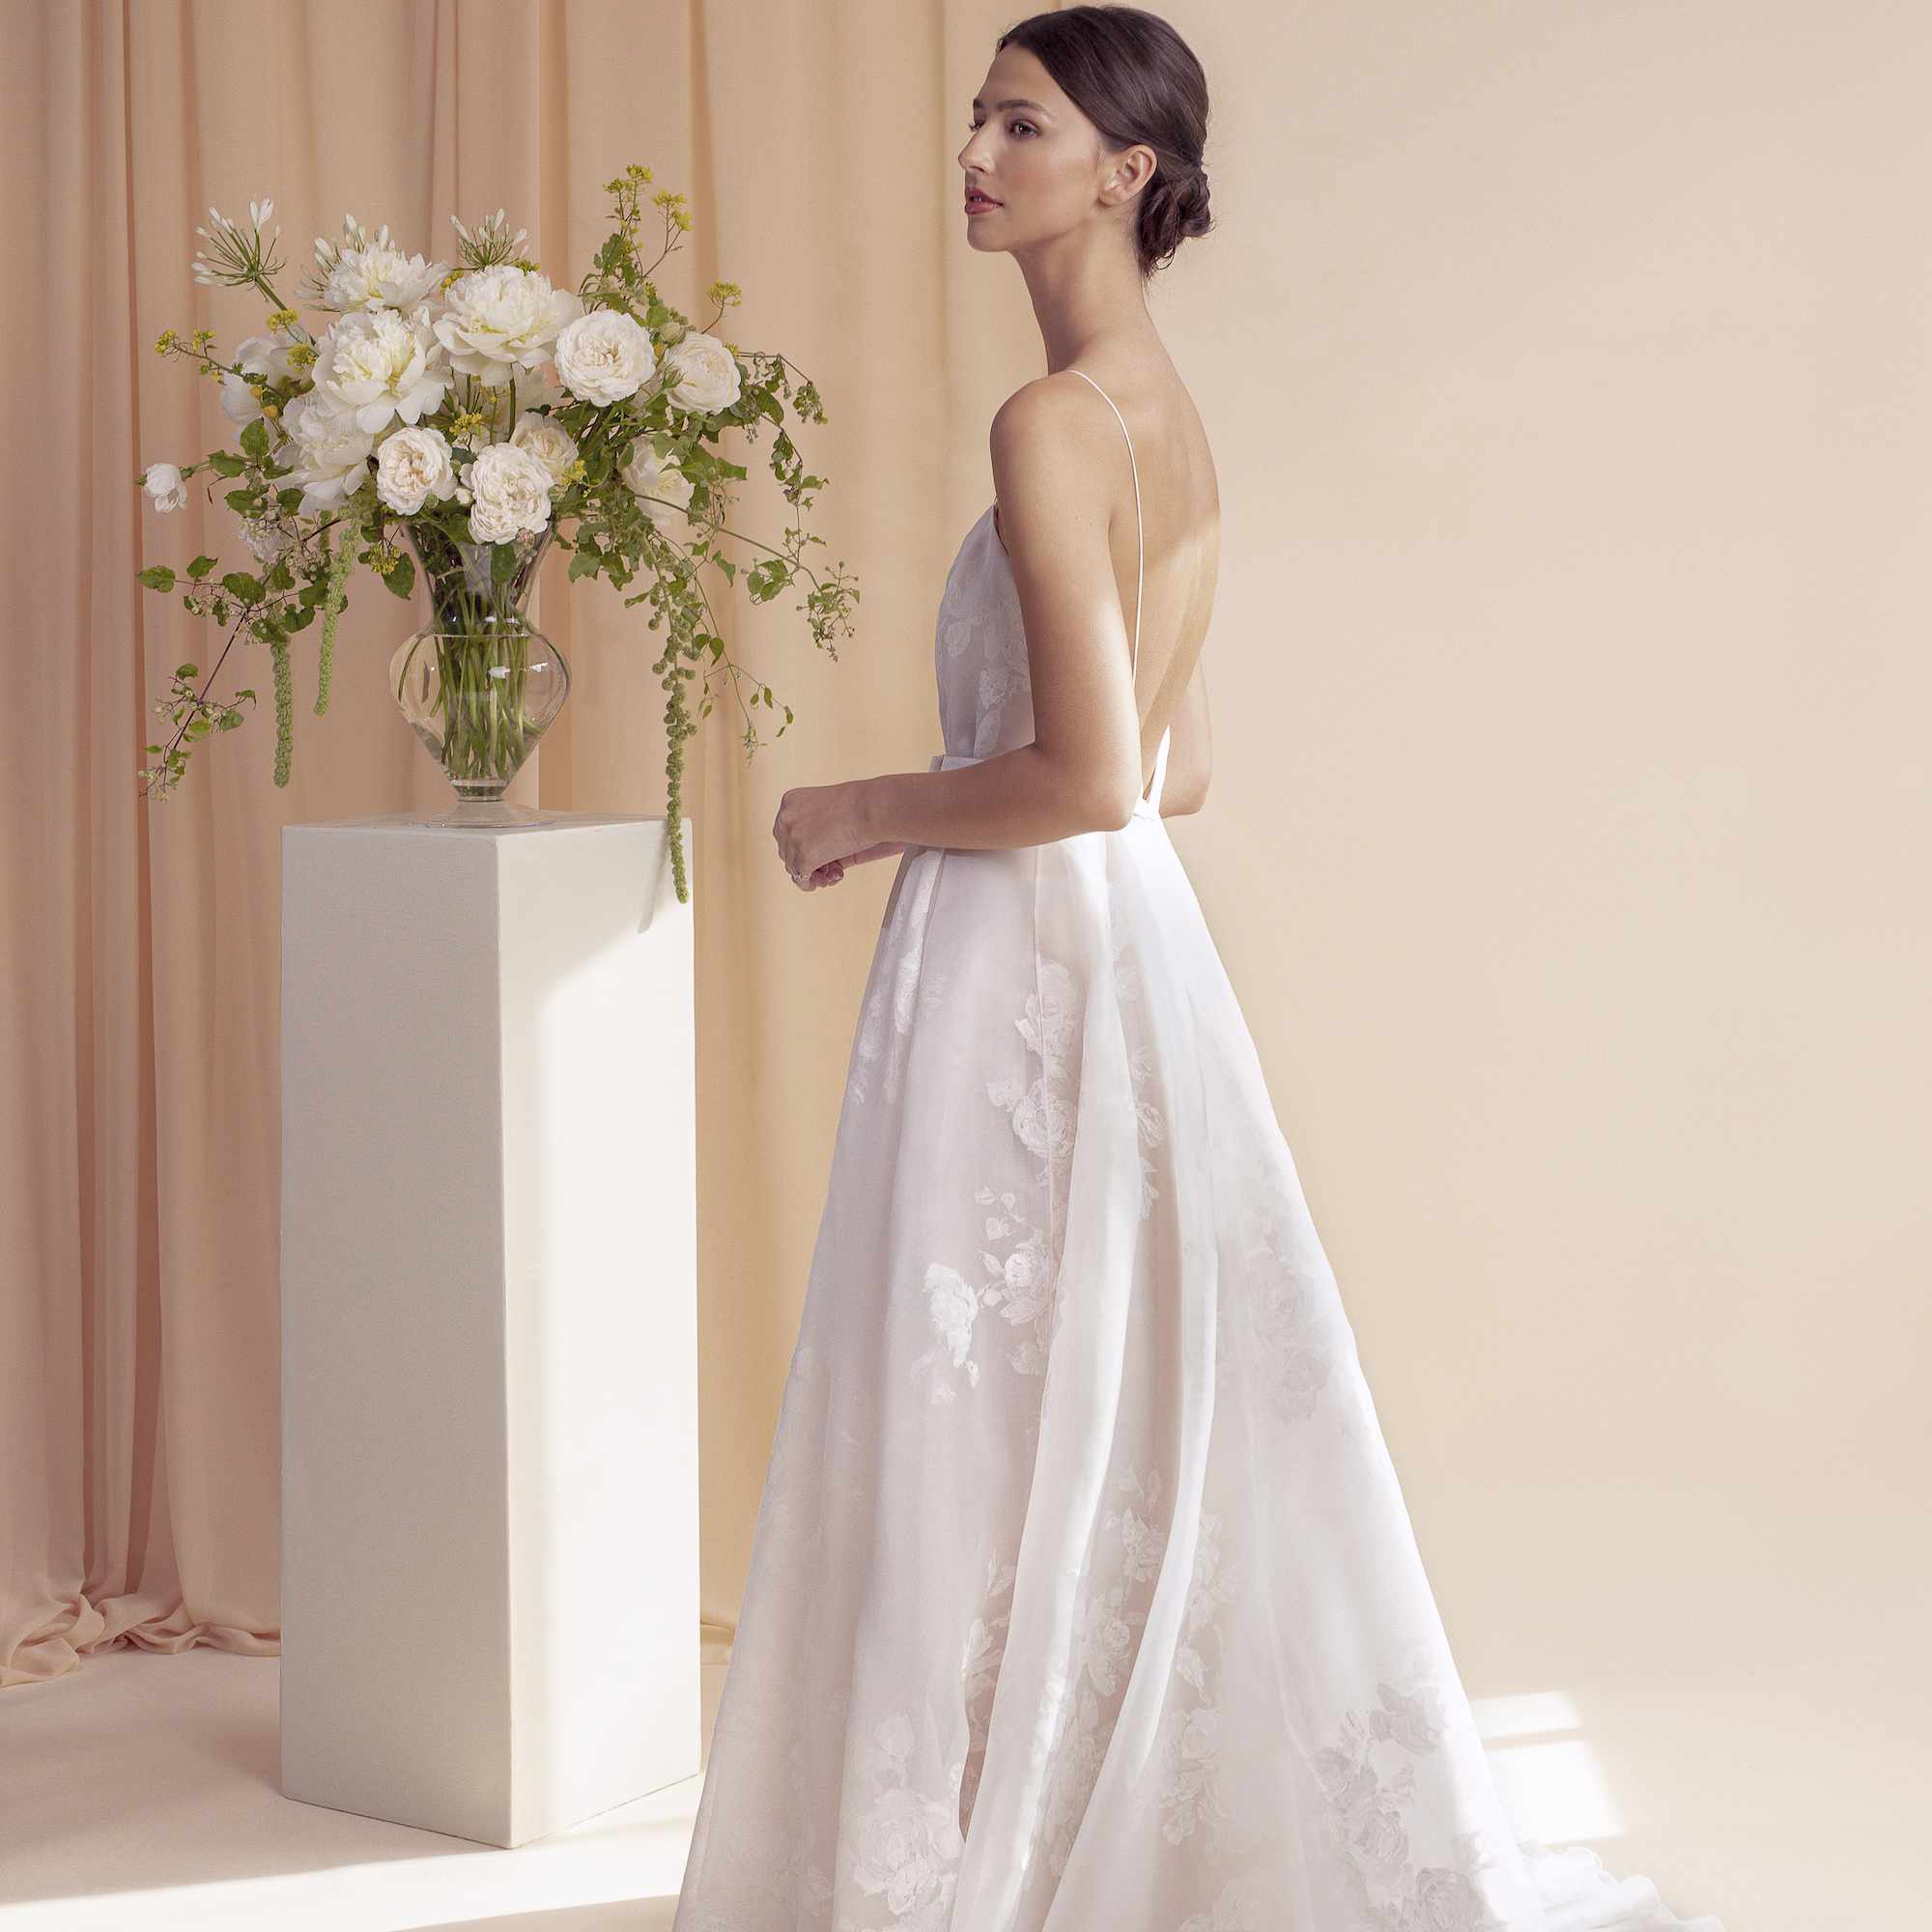 Woma wearing white sleeveless bridal gown next to a pillar with a white floral arrangement on top.